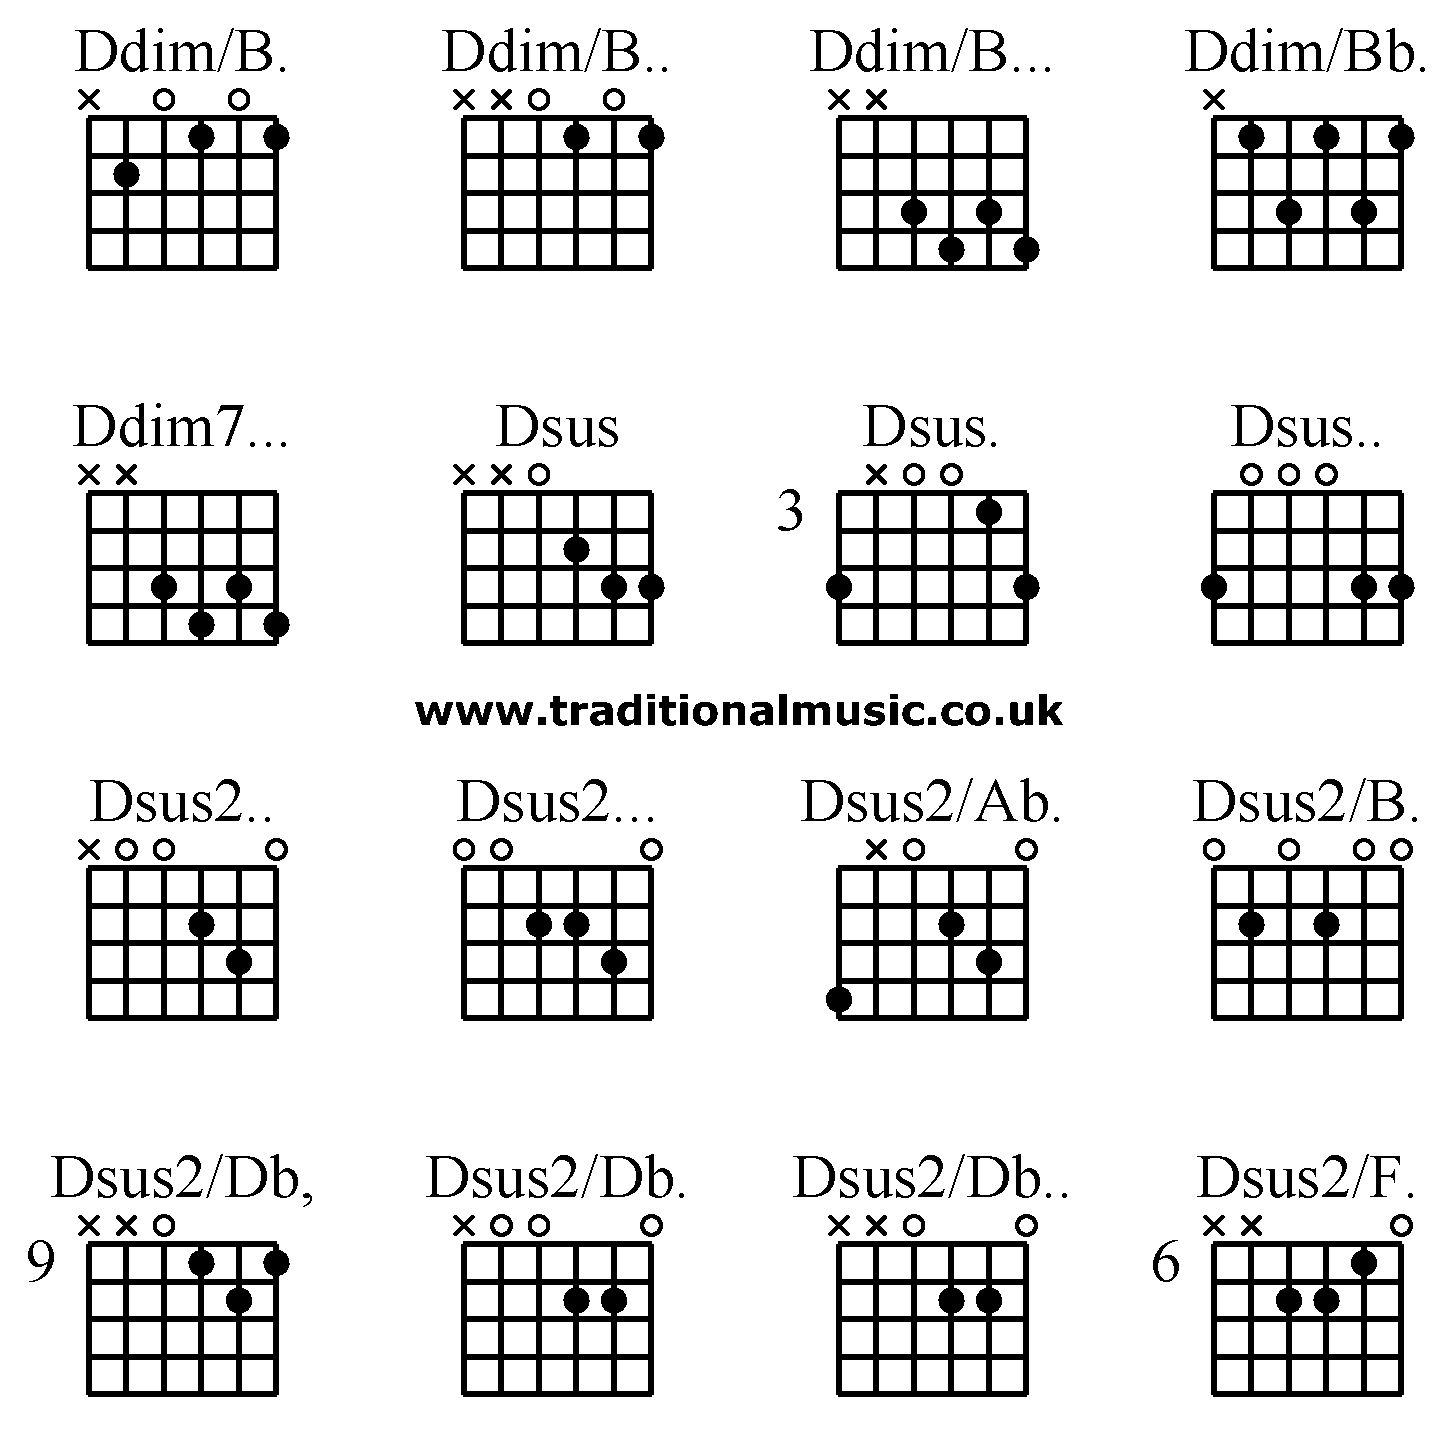 Guitar Chords Advanced Ddimb Ddimb Ddimbb Ddimbb Dsus Dsus